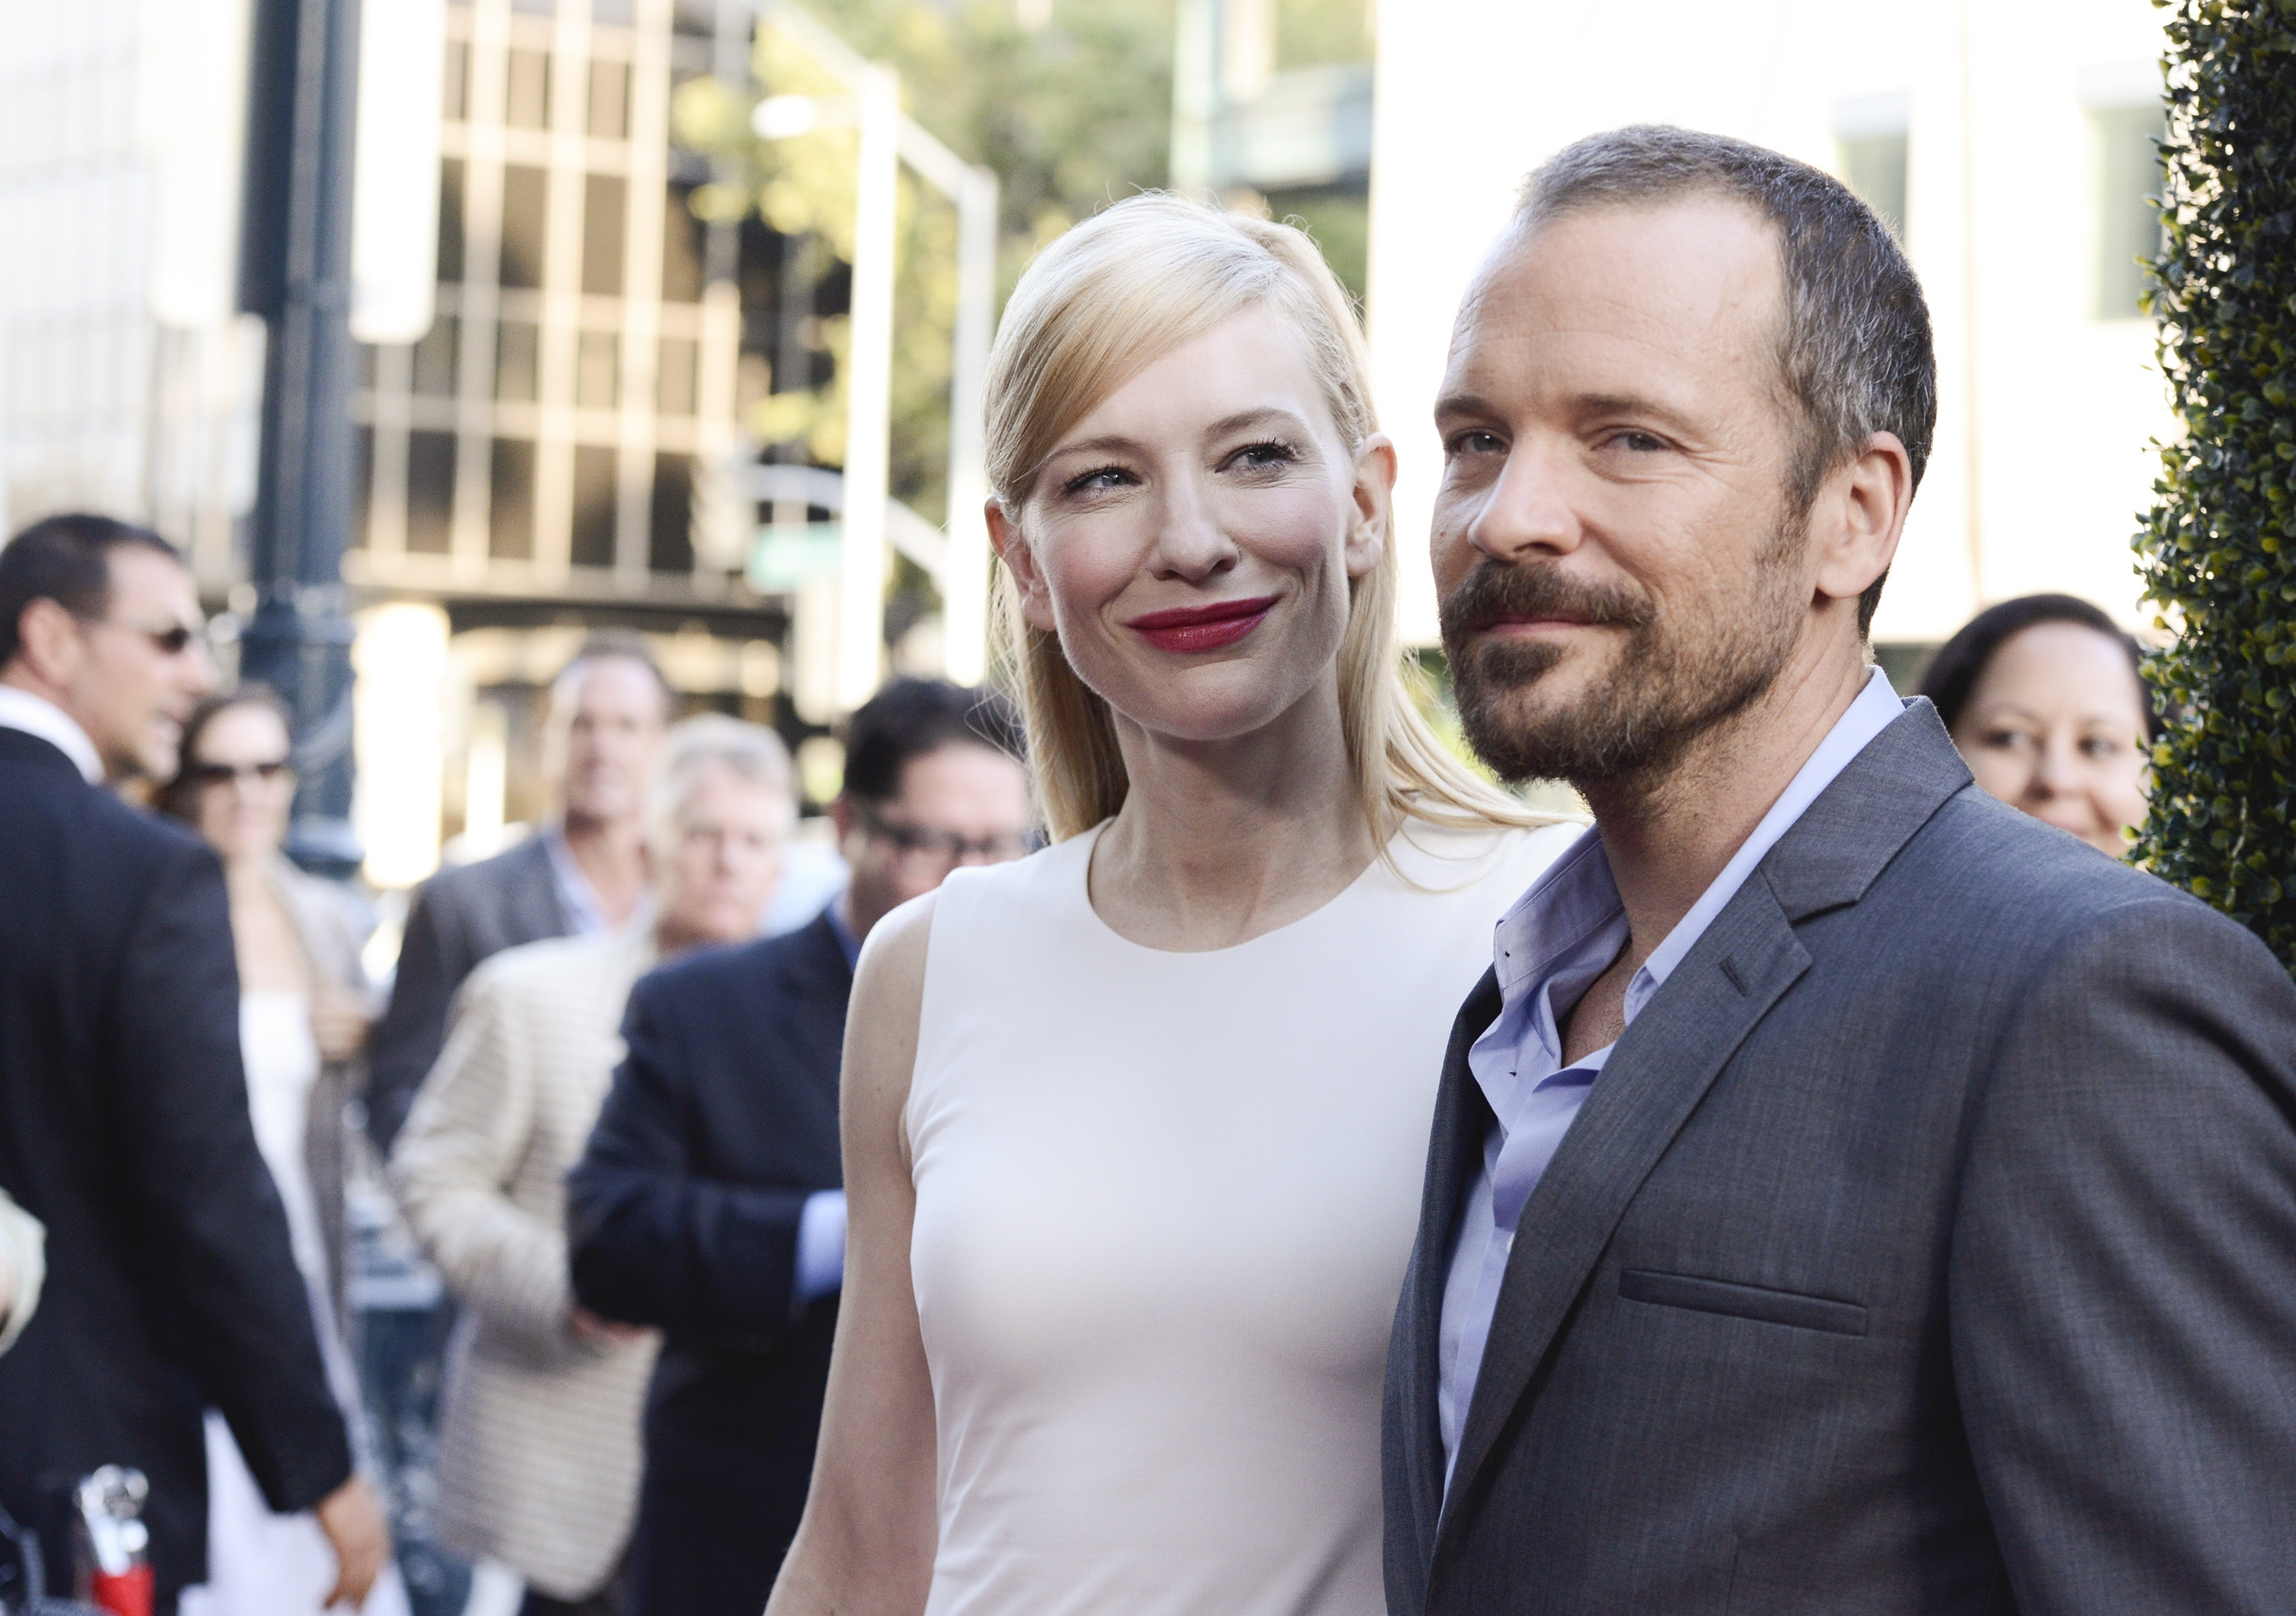 """Something to smile about: Actors Cate Blanchett and Peter Sarsgaard are all smiles as they arrive at the Los Angeles premiere of """"Blue Jasmine"""" on Wednesday."""